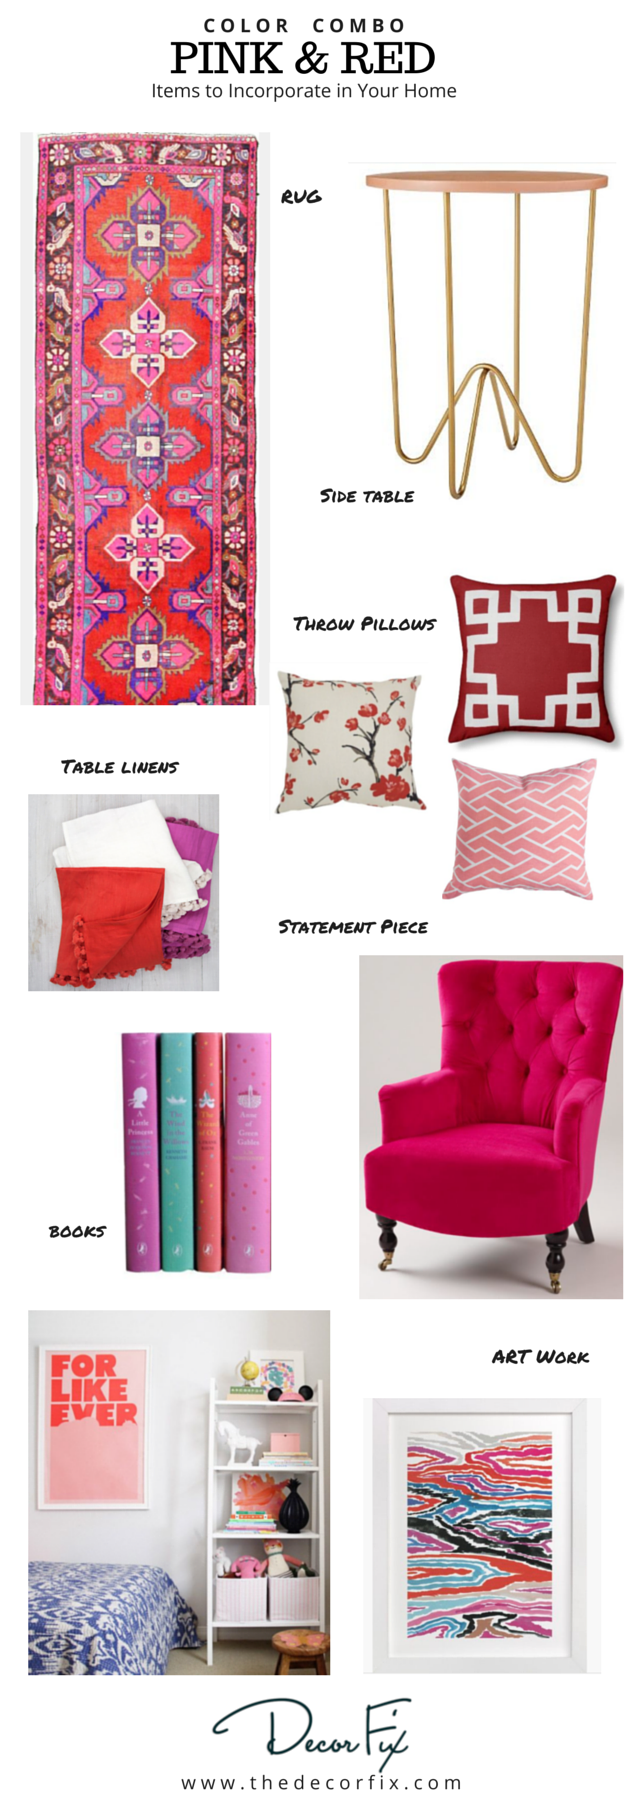 Pink and red home decor items